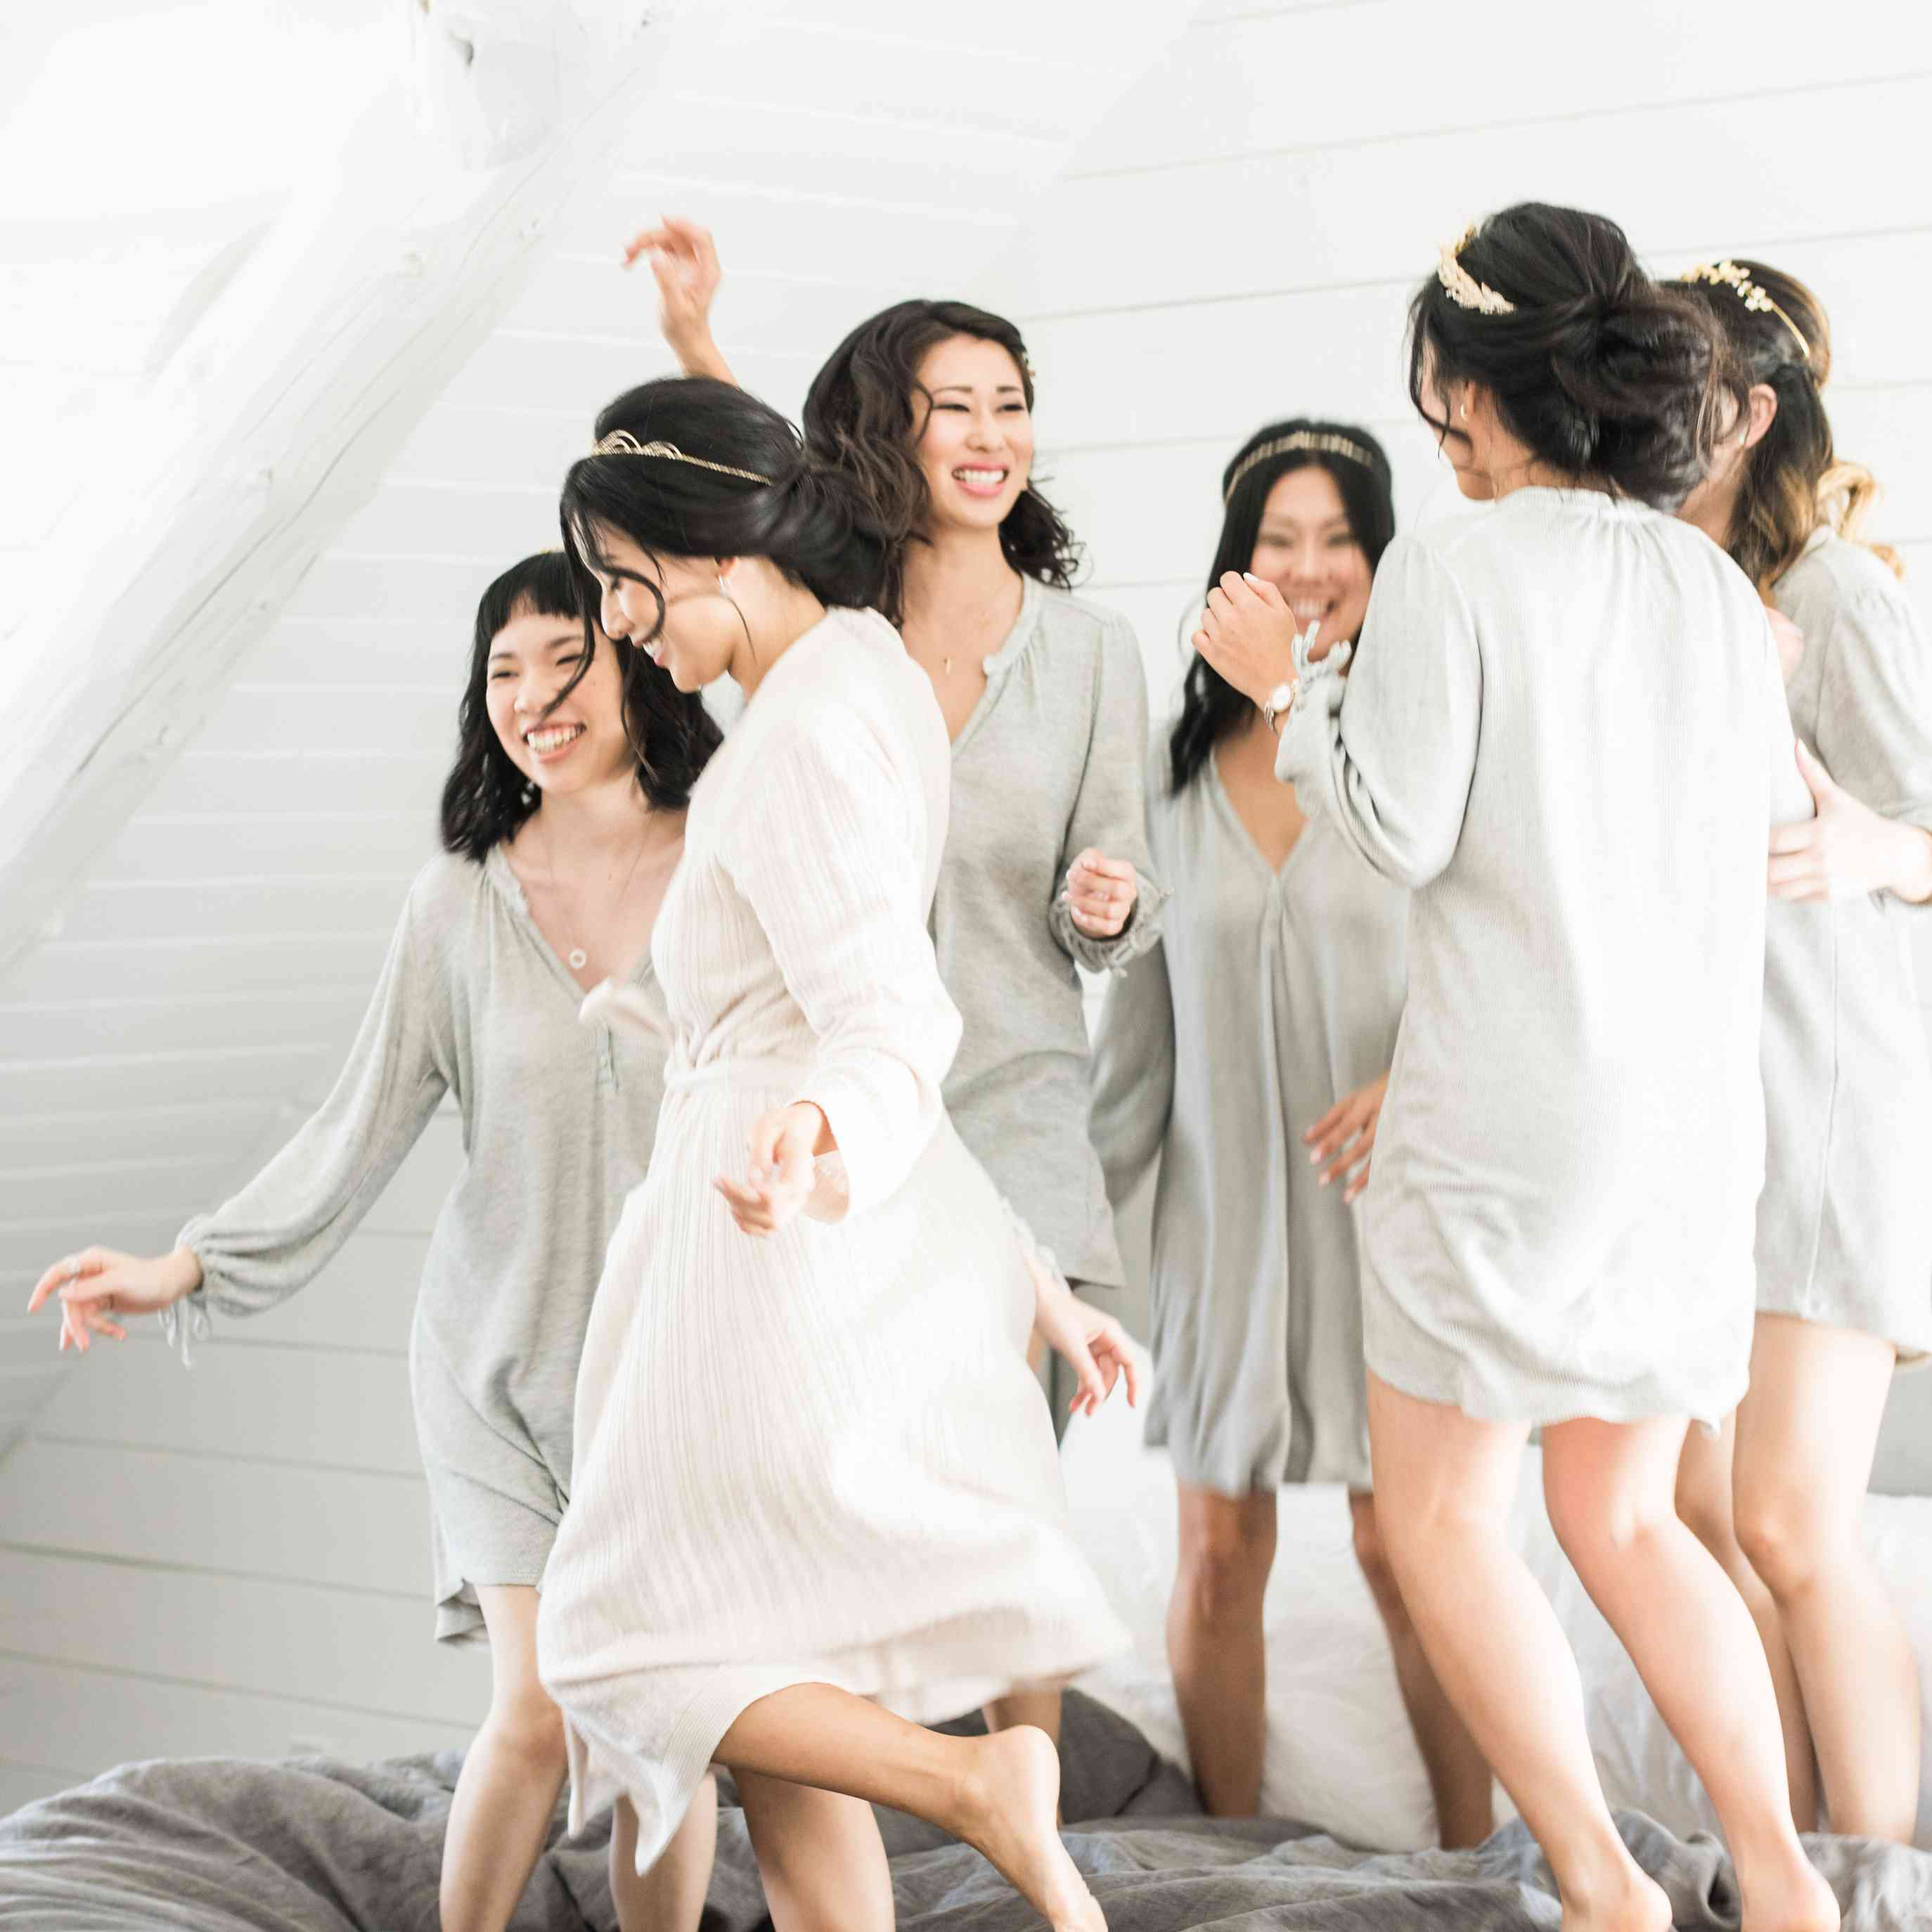 Bride Jumping on Bed With Bridesmaids